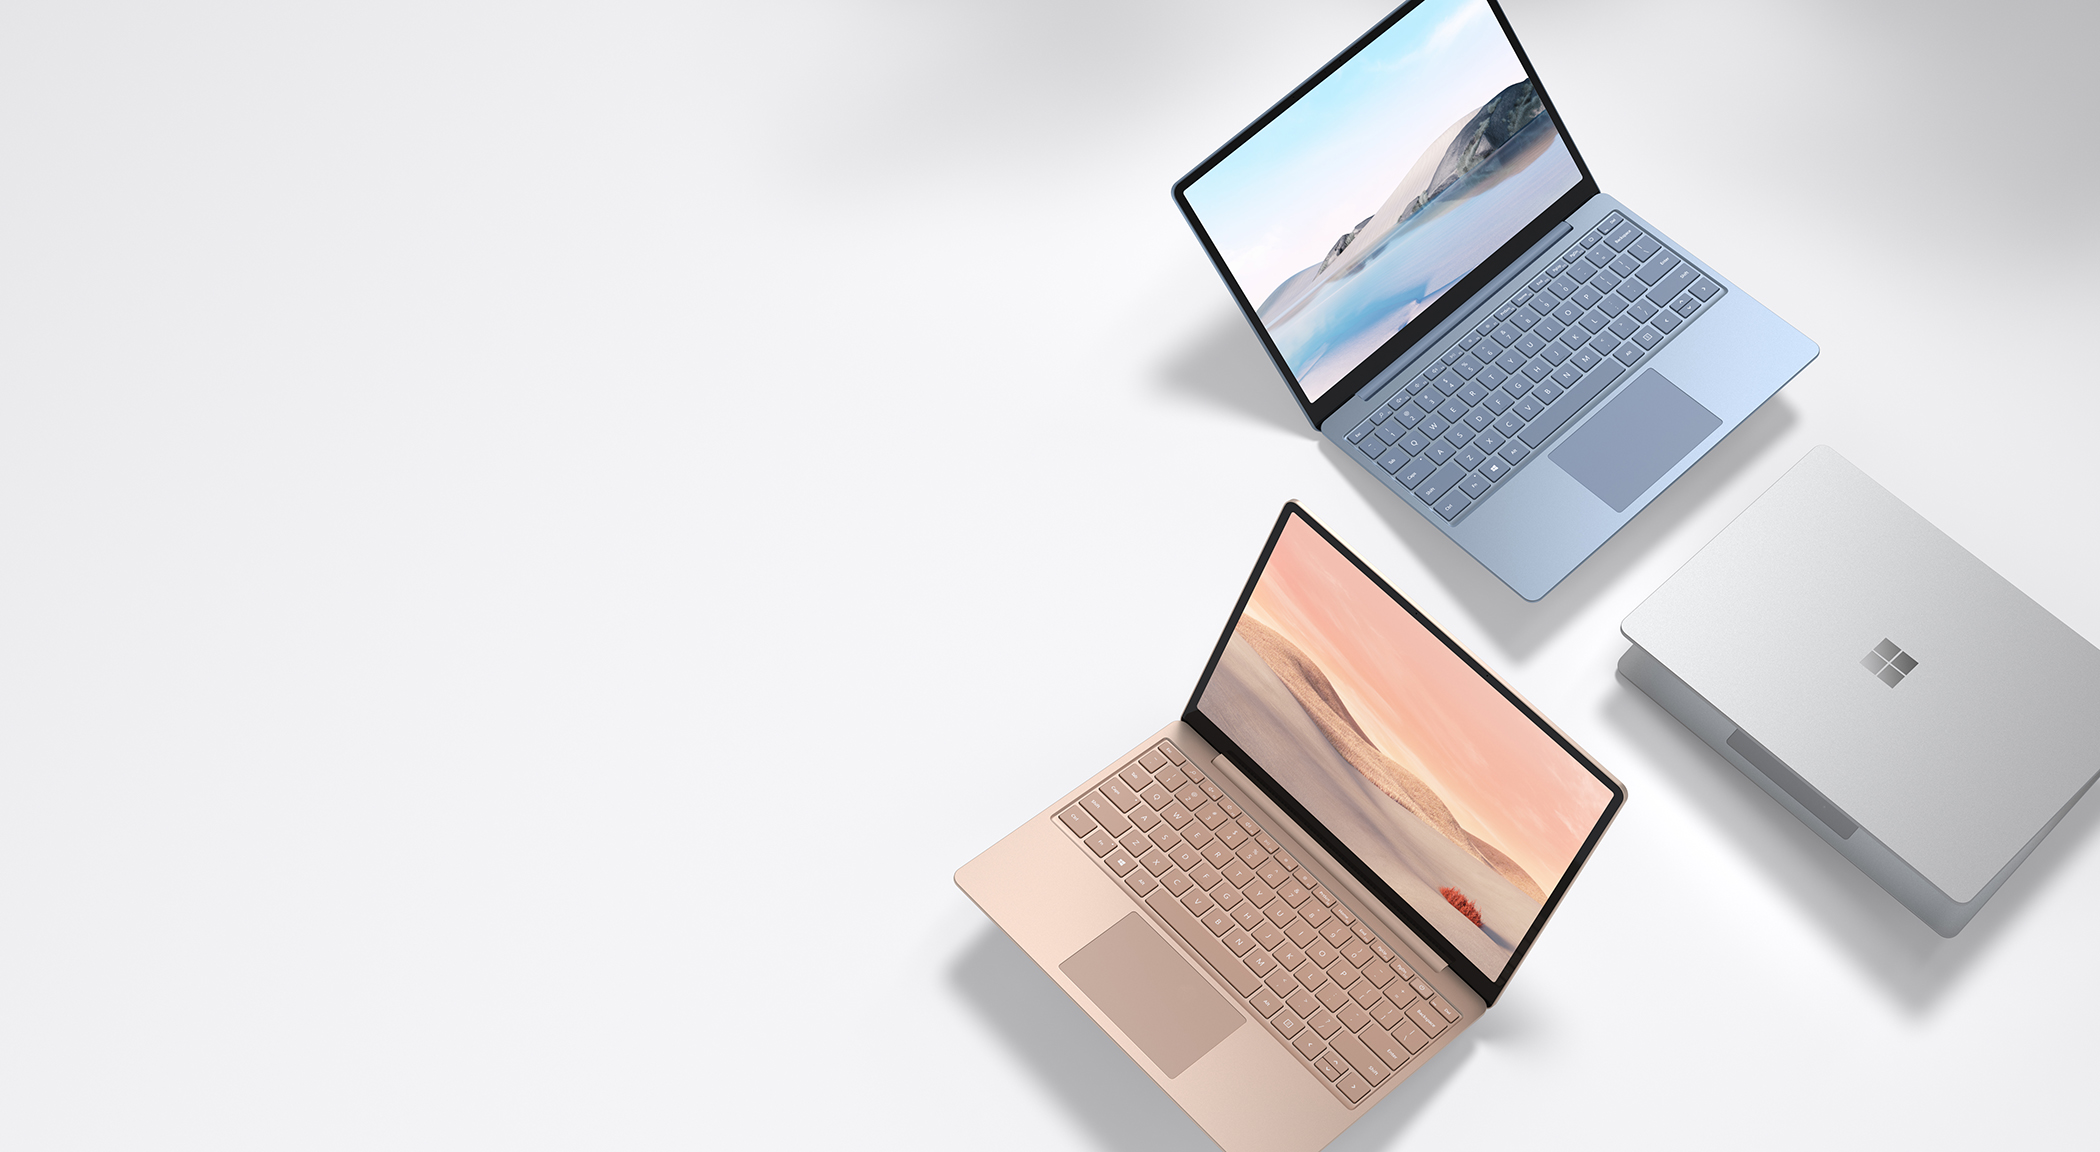 Surface Laptop Go, Microsoft's lightest laptop now available in India